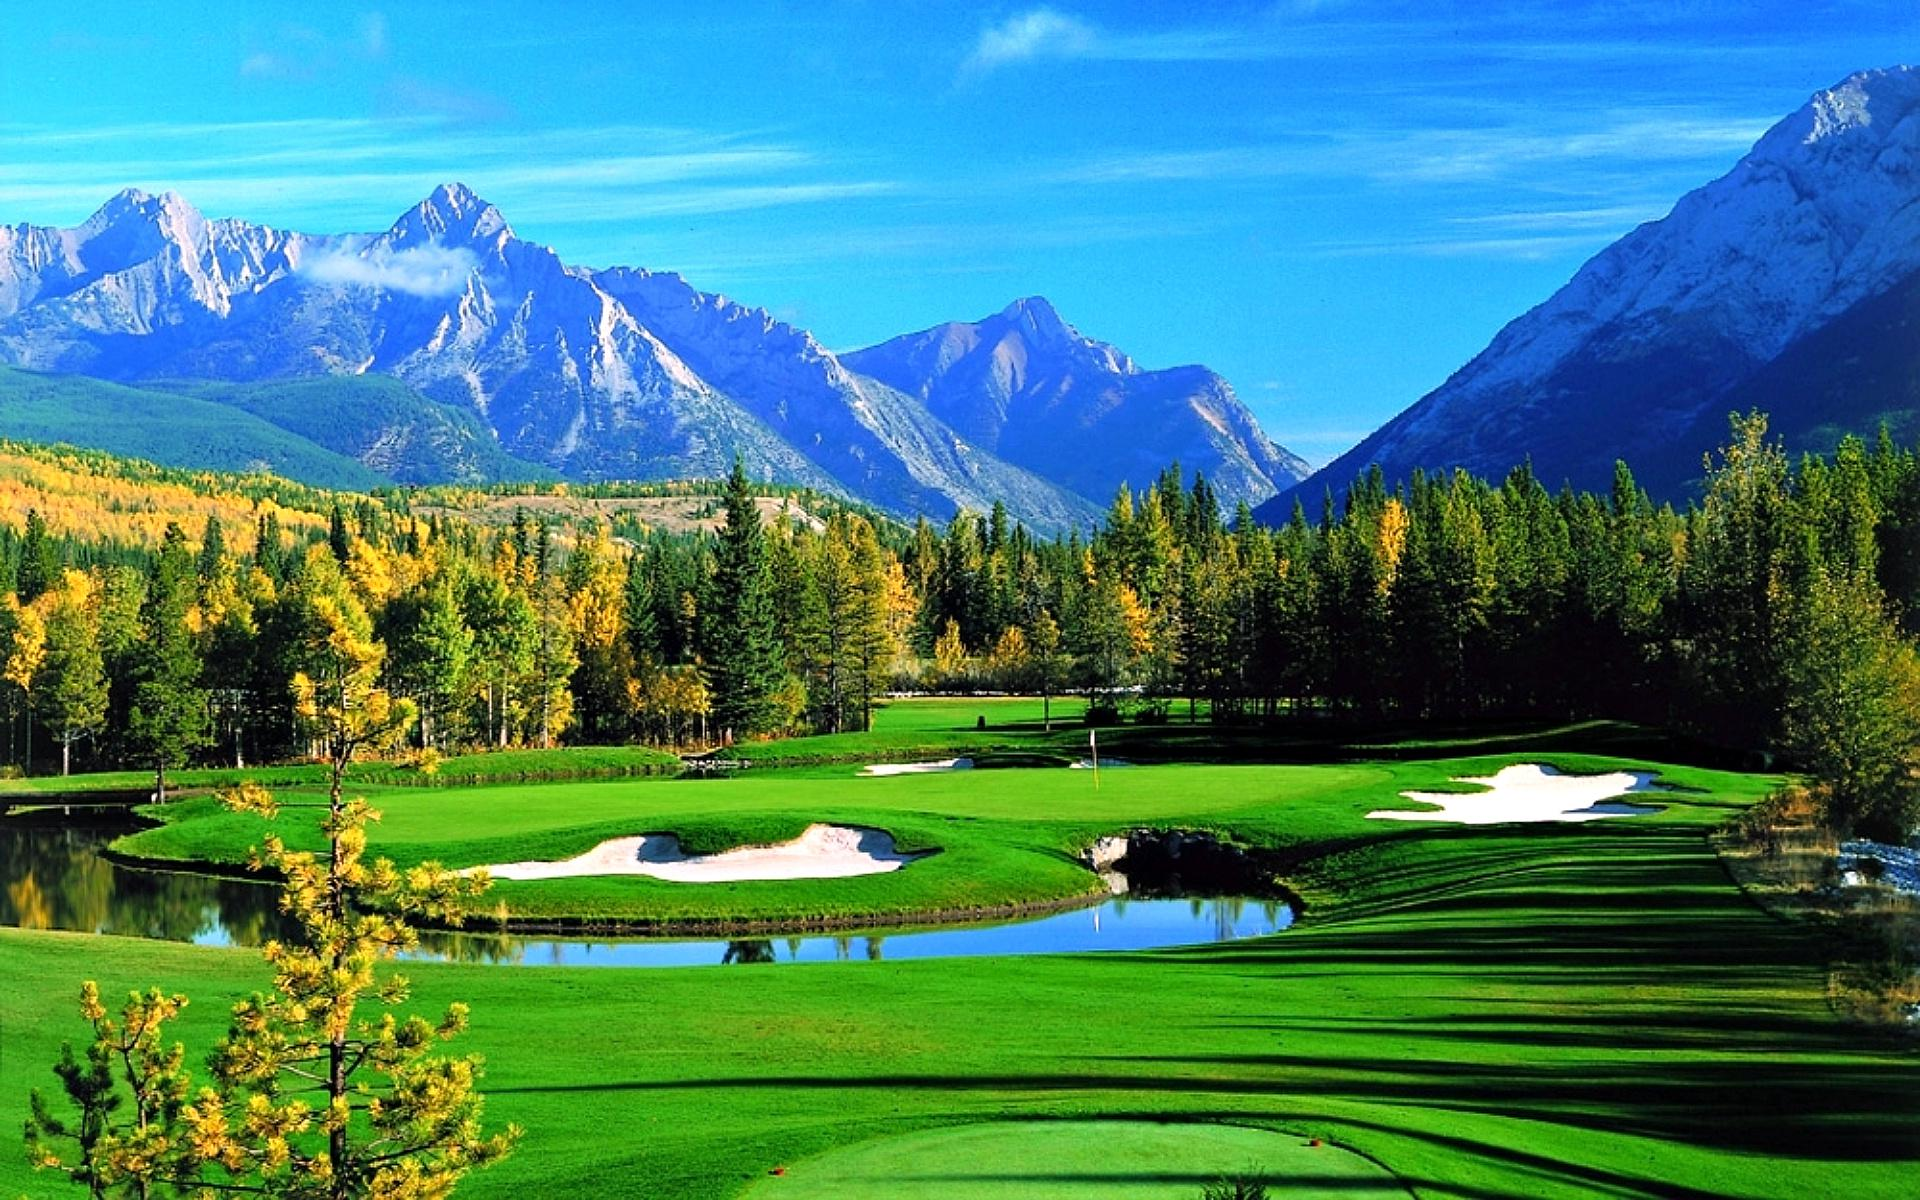 golf course   156459   High Quality and Resolution Wallpapers 1920x1200